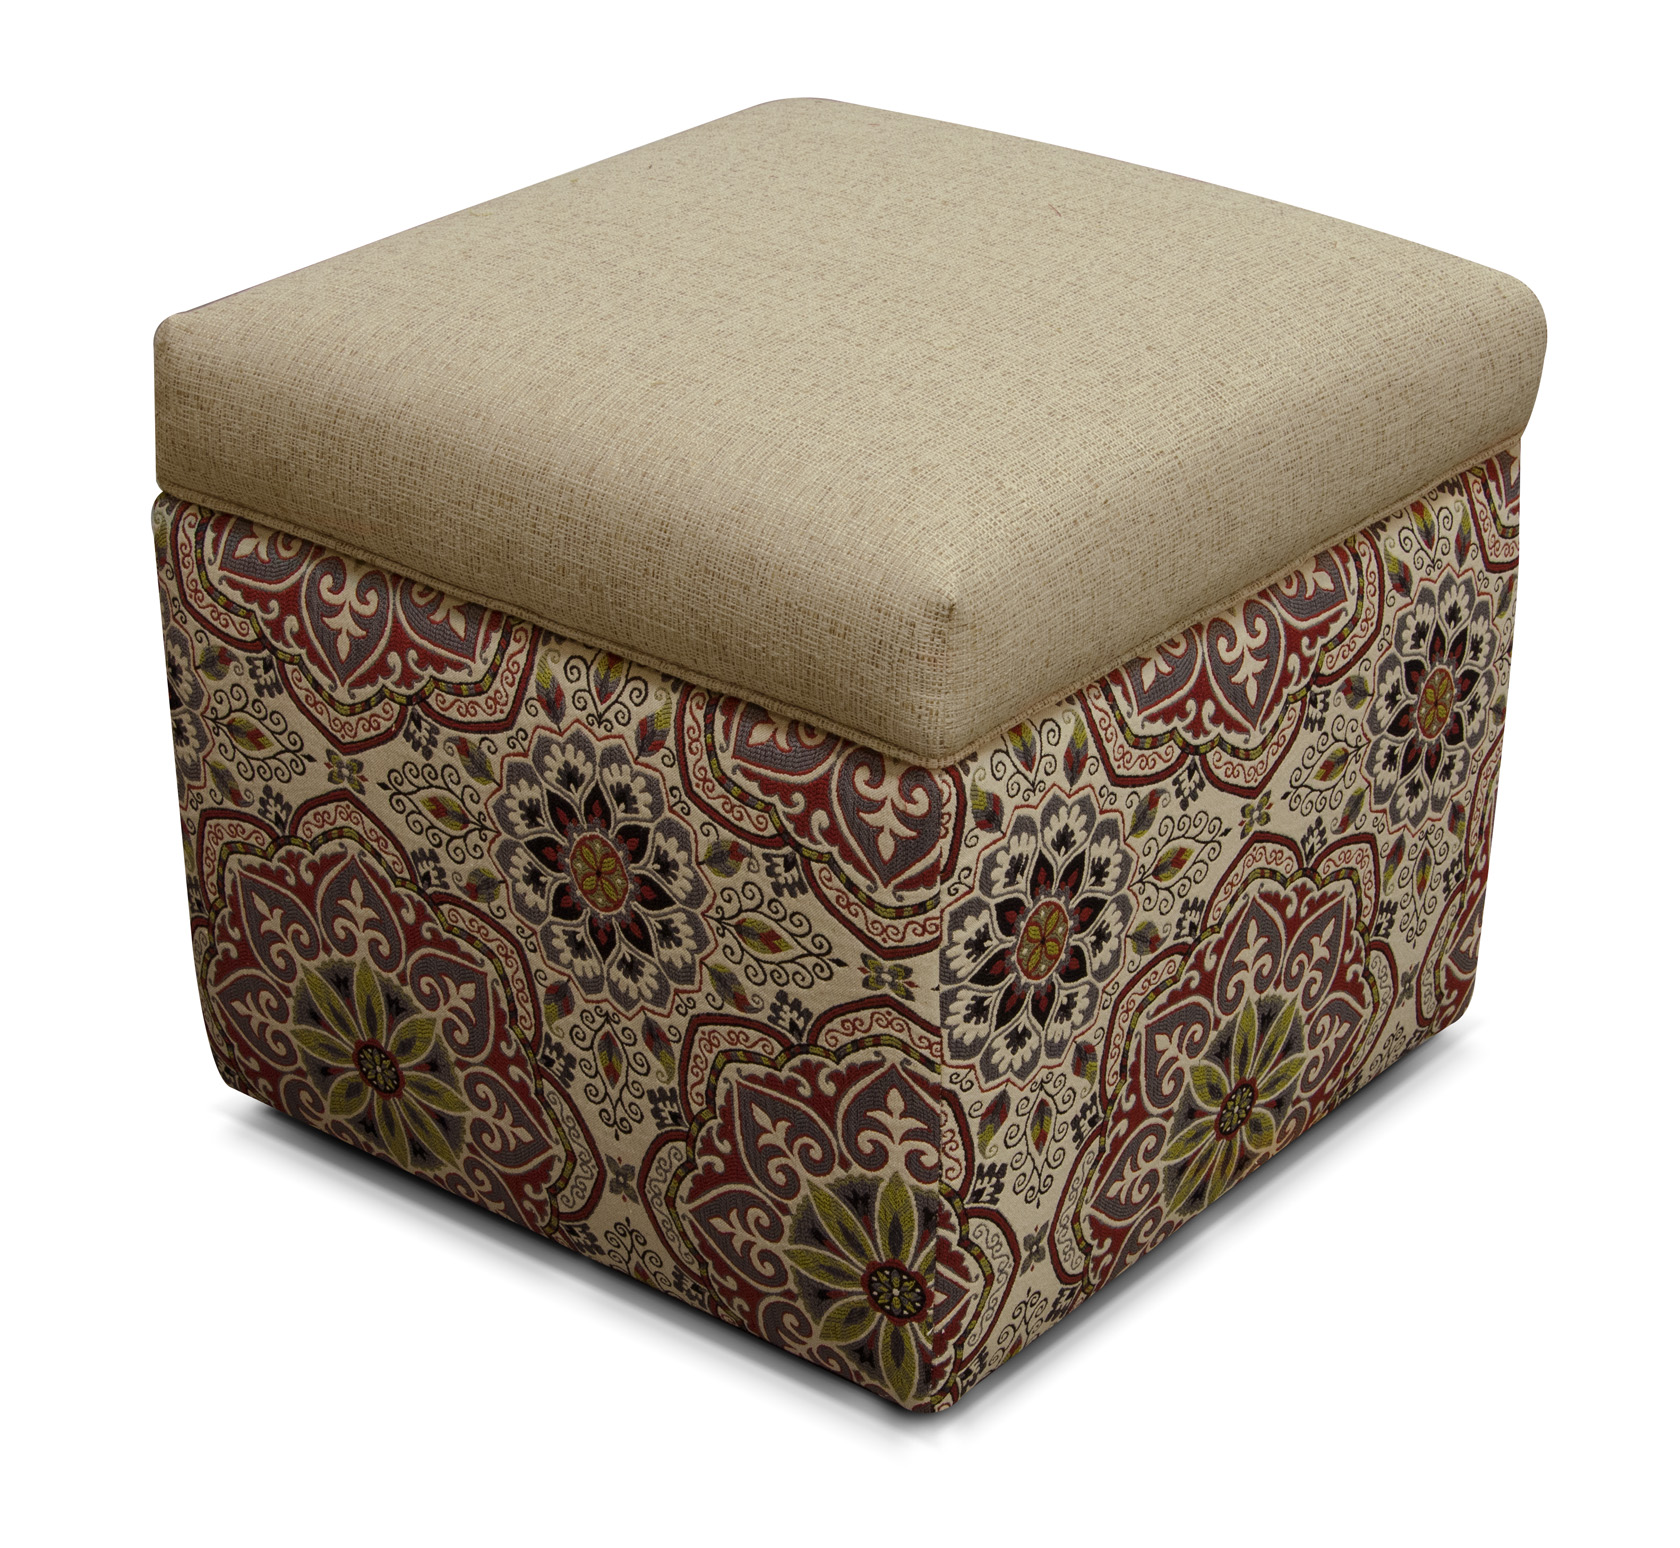 england-furniture-reviews-gypsy-poppy-compel-raffia-ottoman